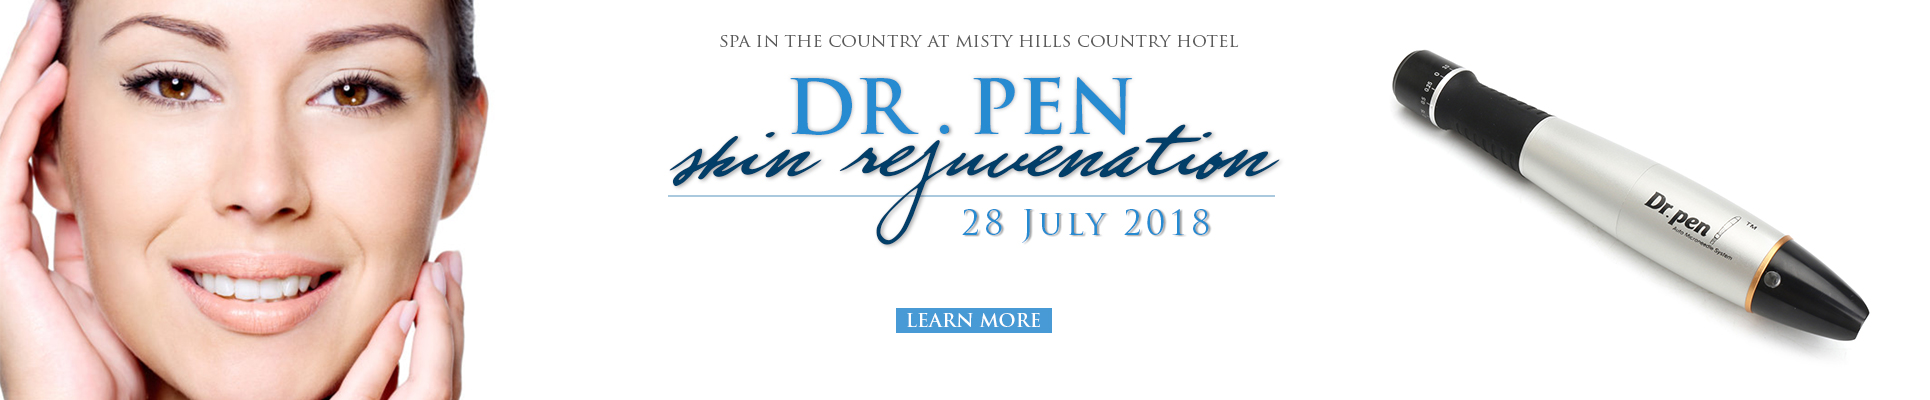 Spa in the Country Dr Pen micro needling Treatment Package launch Spas in Gauteng